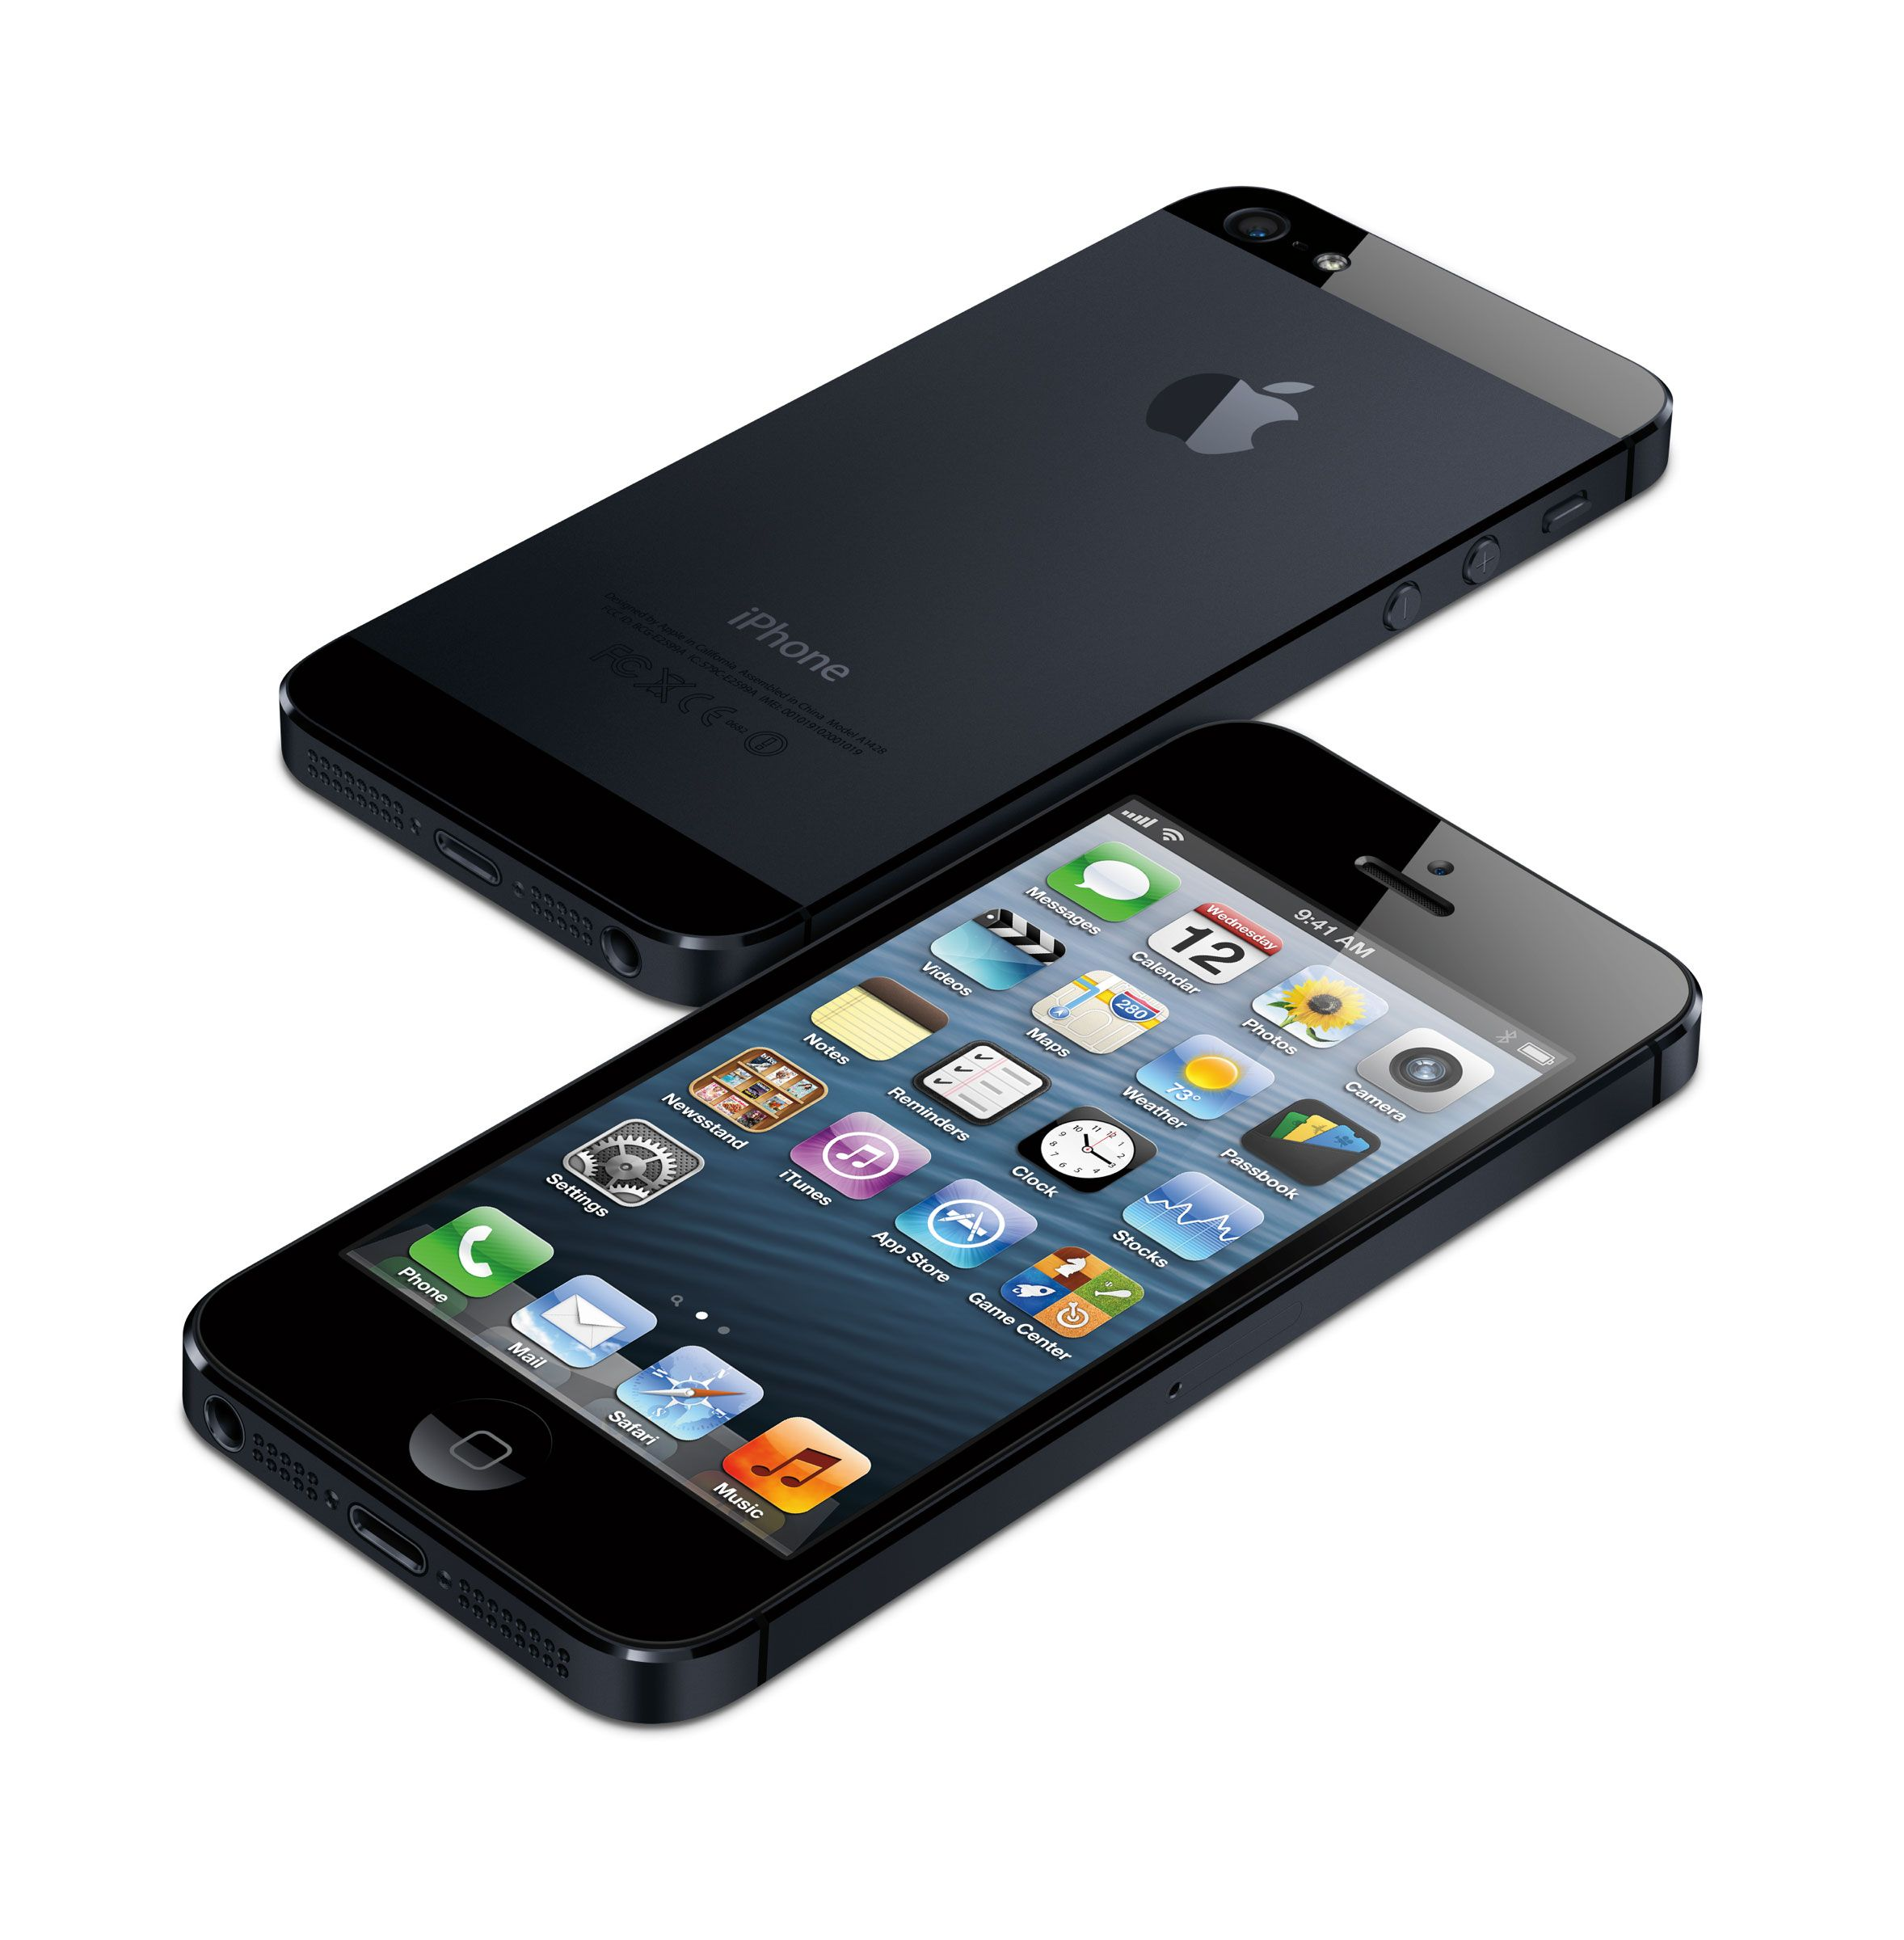 Apple iPhone 5 Black 899.00 Iphone 5, Unlock iphone